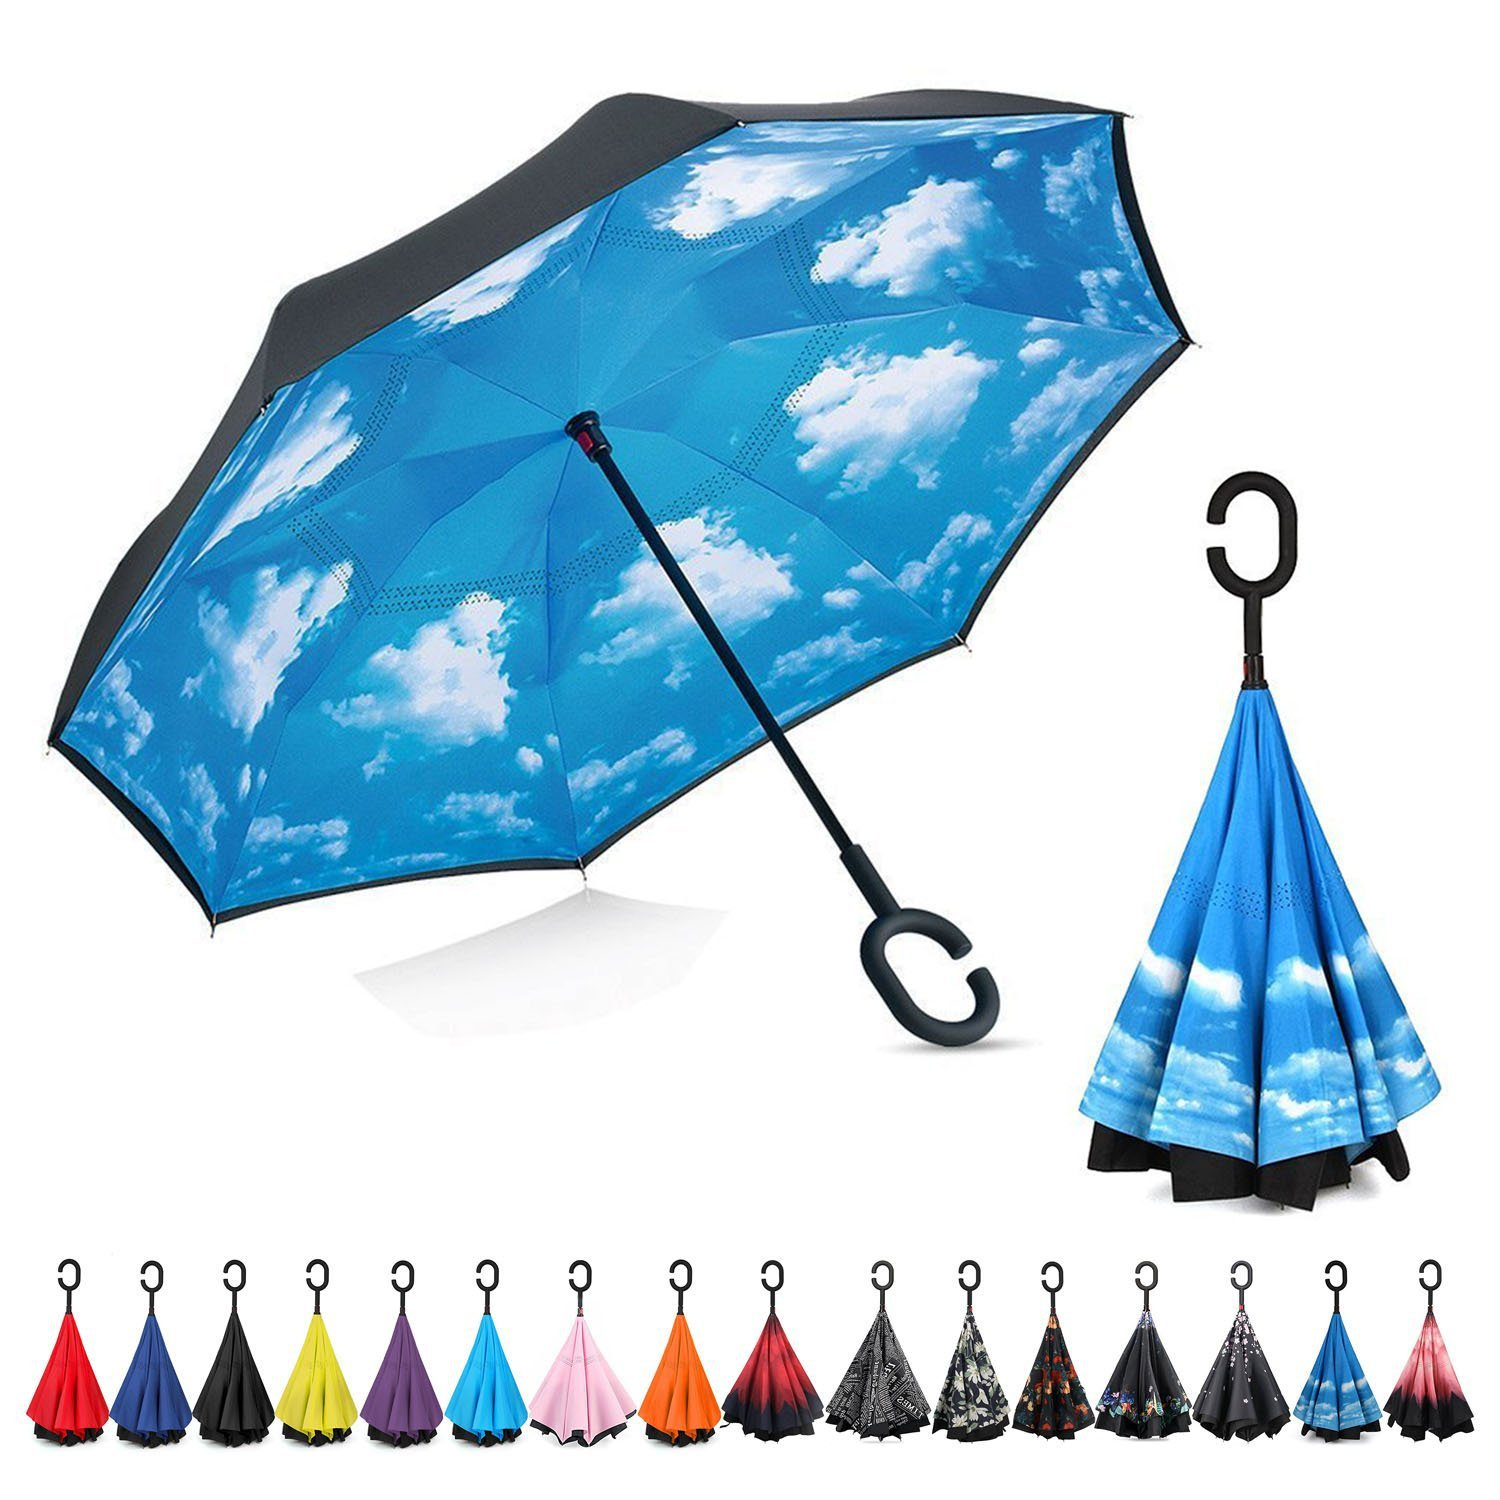 Cartoon Reverse Umbrella Qi Che San Parasol Cartoon C- Shaped Reverse Umbrella Customizable Advertising Umbrella Logo Customizab